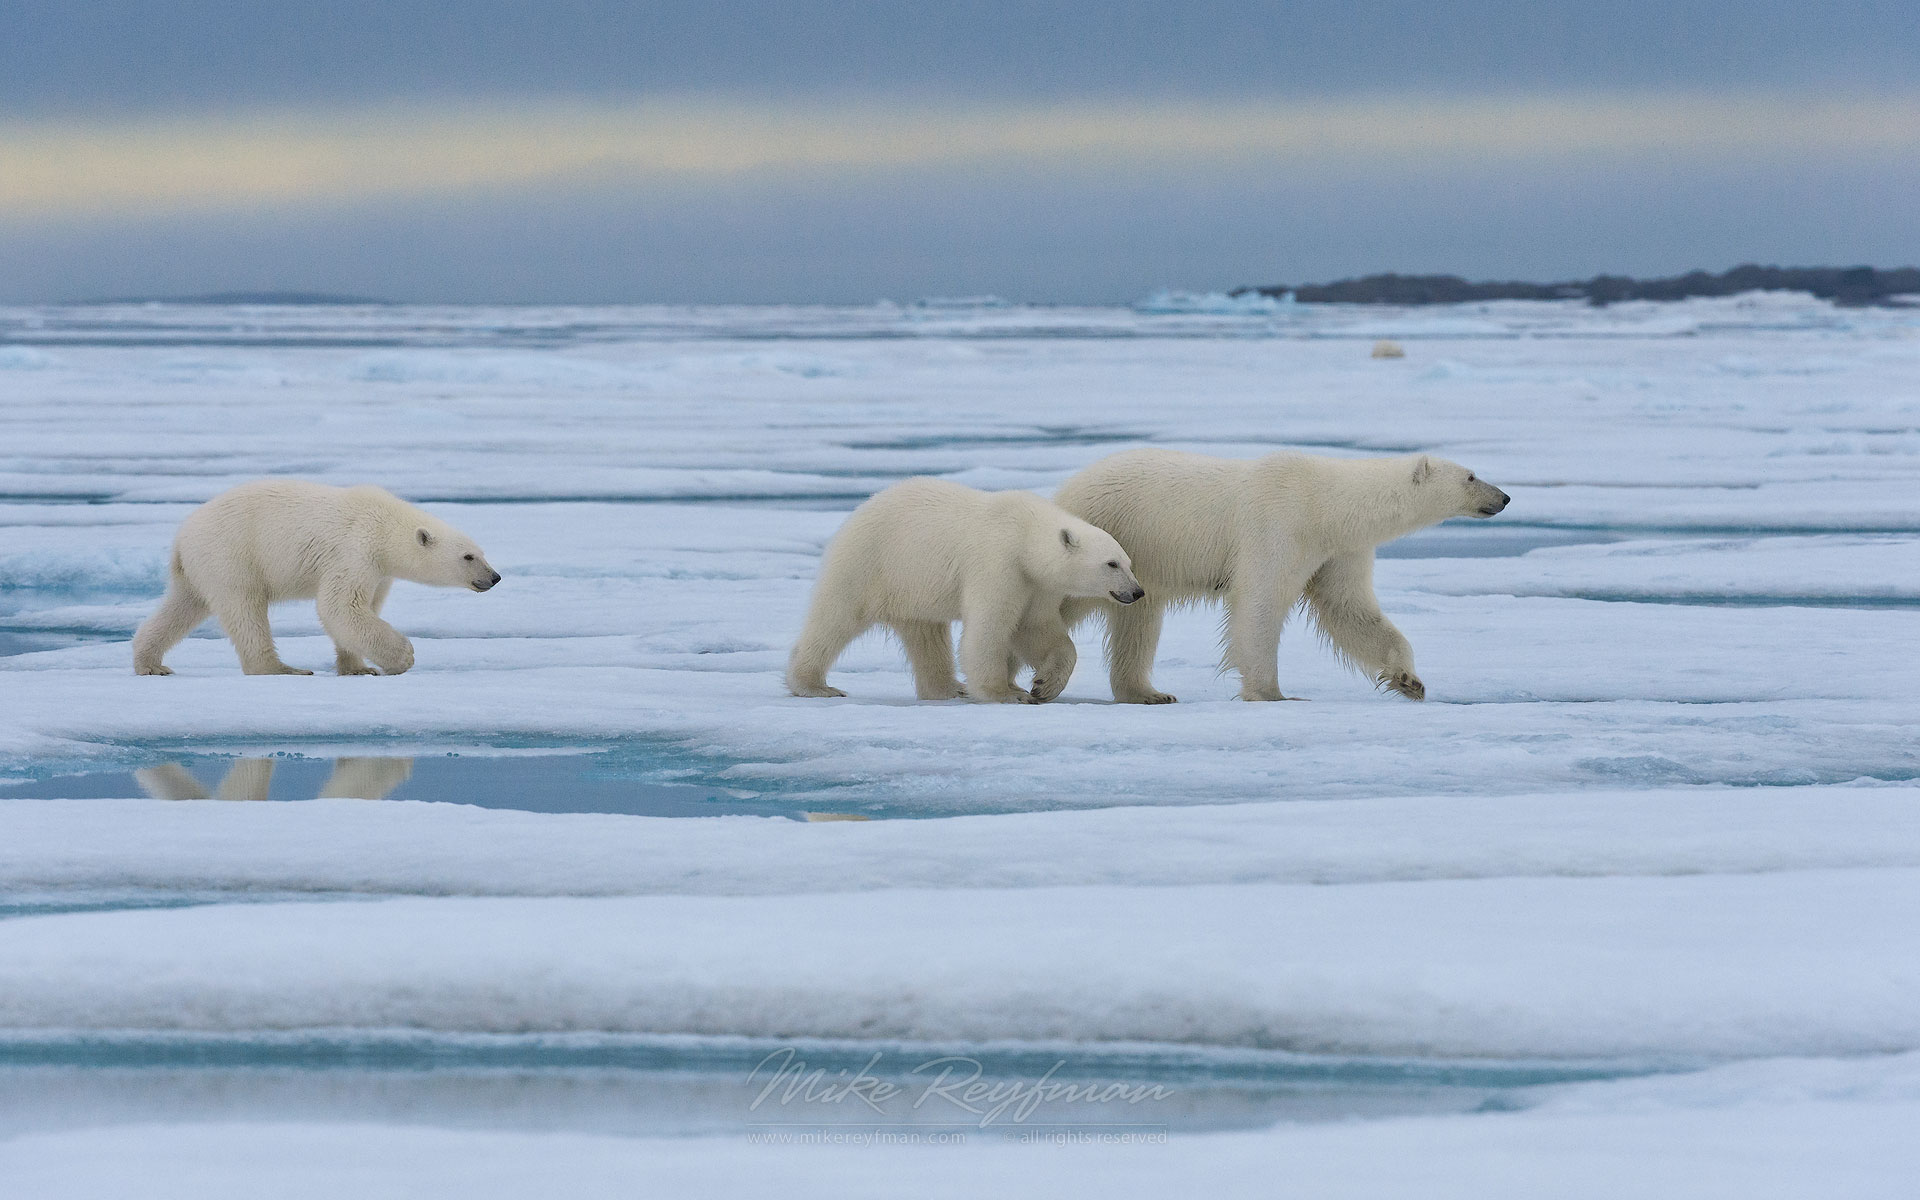 Female polar bear with twin cubs walking on the melting ice along Spitsbergen coast. Svalbard, Norway. - Polar-Bears-Svalbard-Spitsbergen-Norway - Mike Reyfman Photography